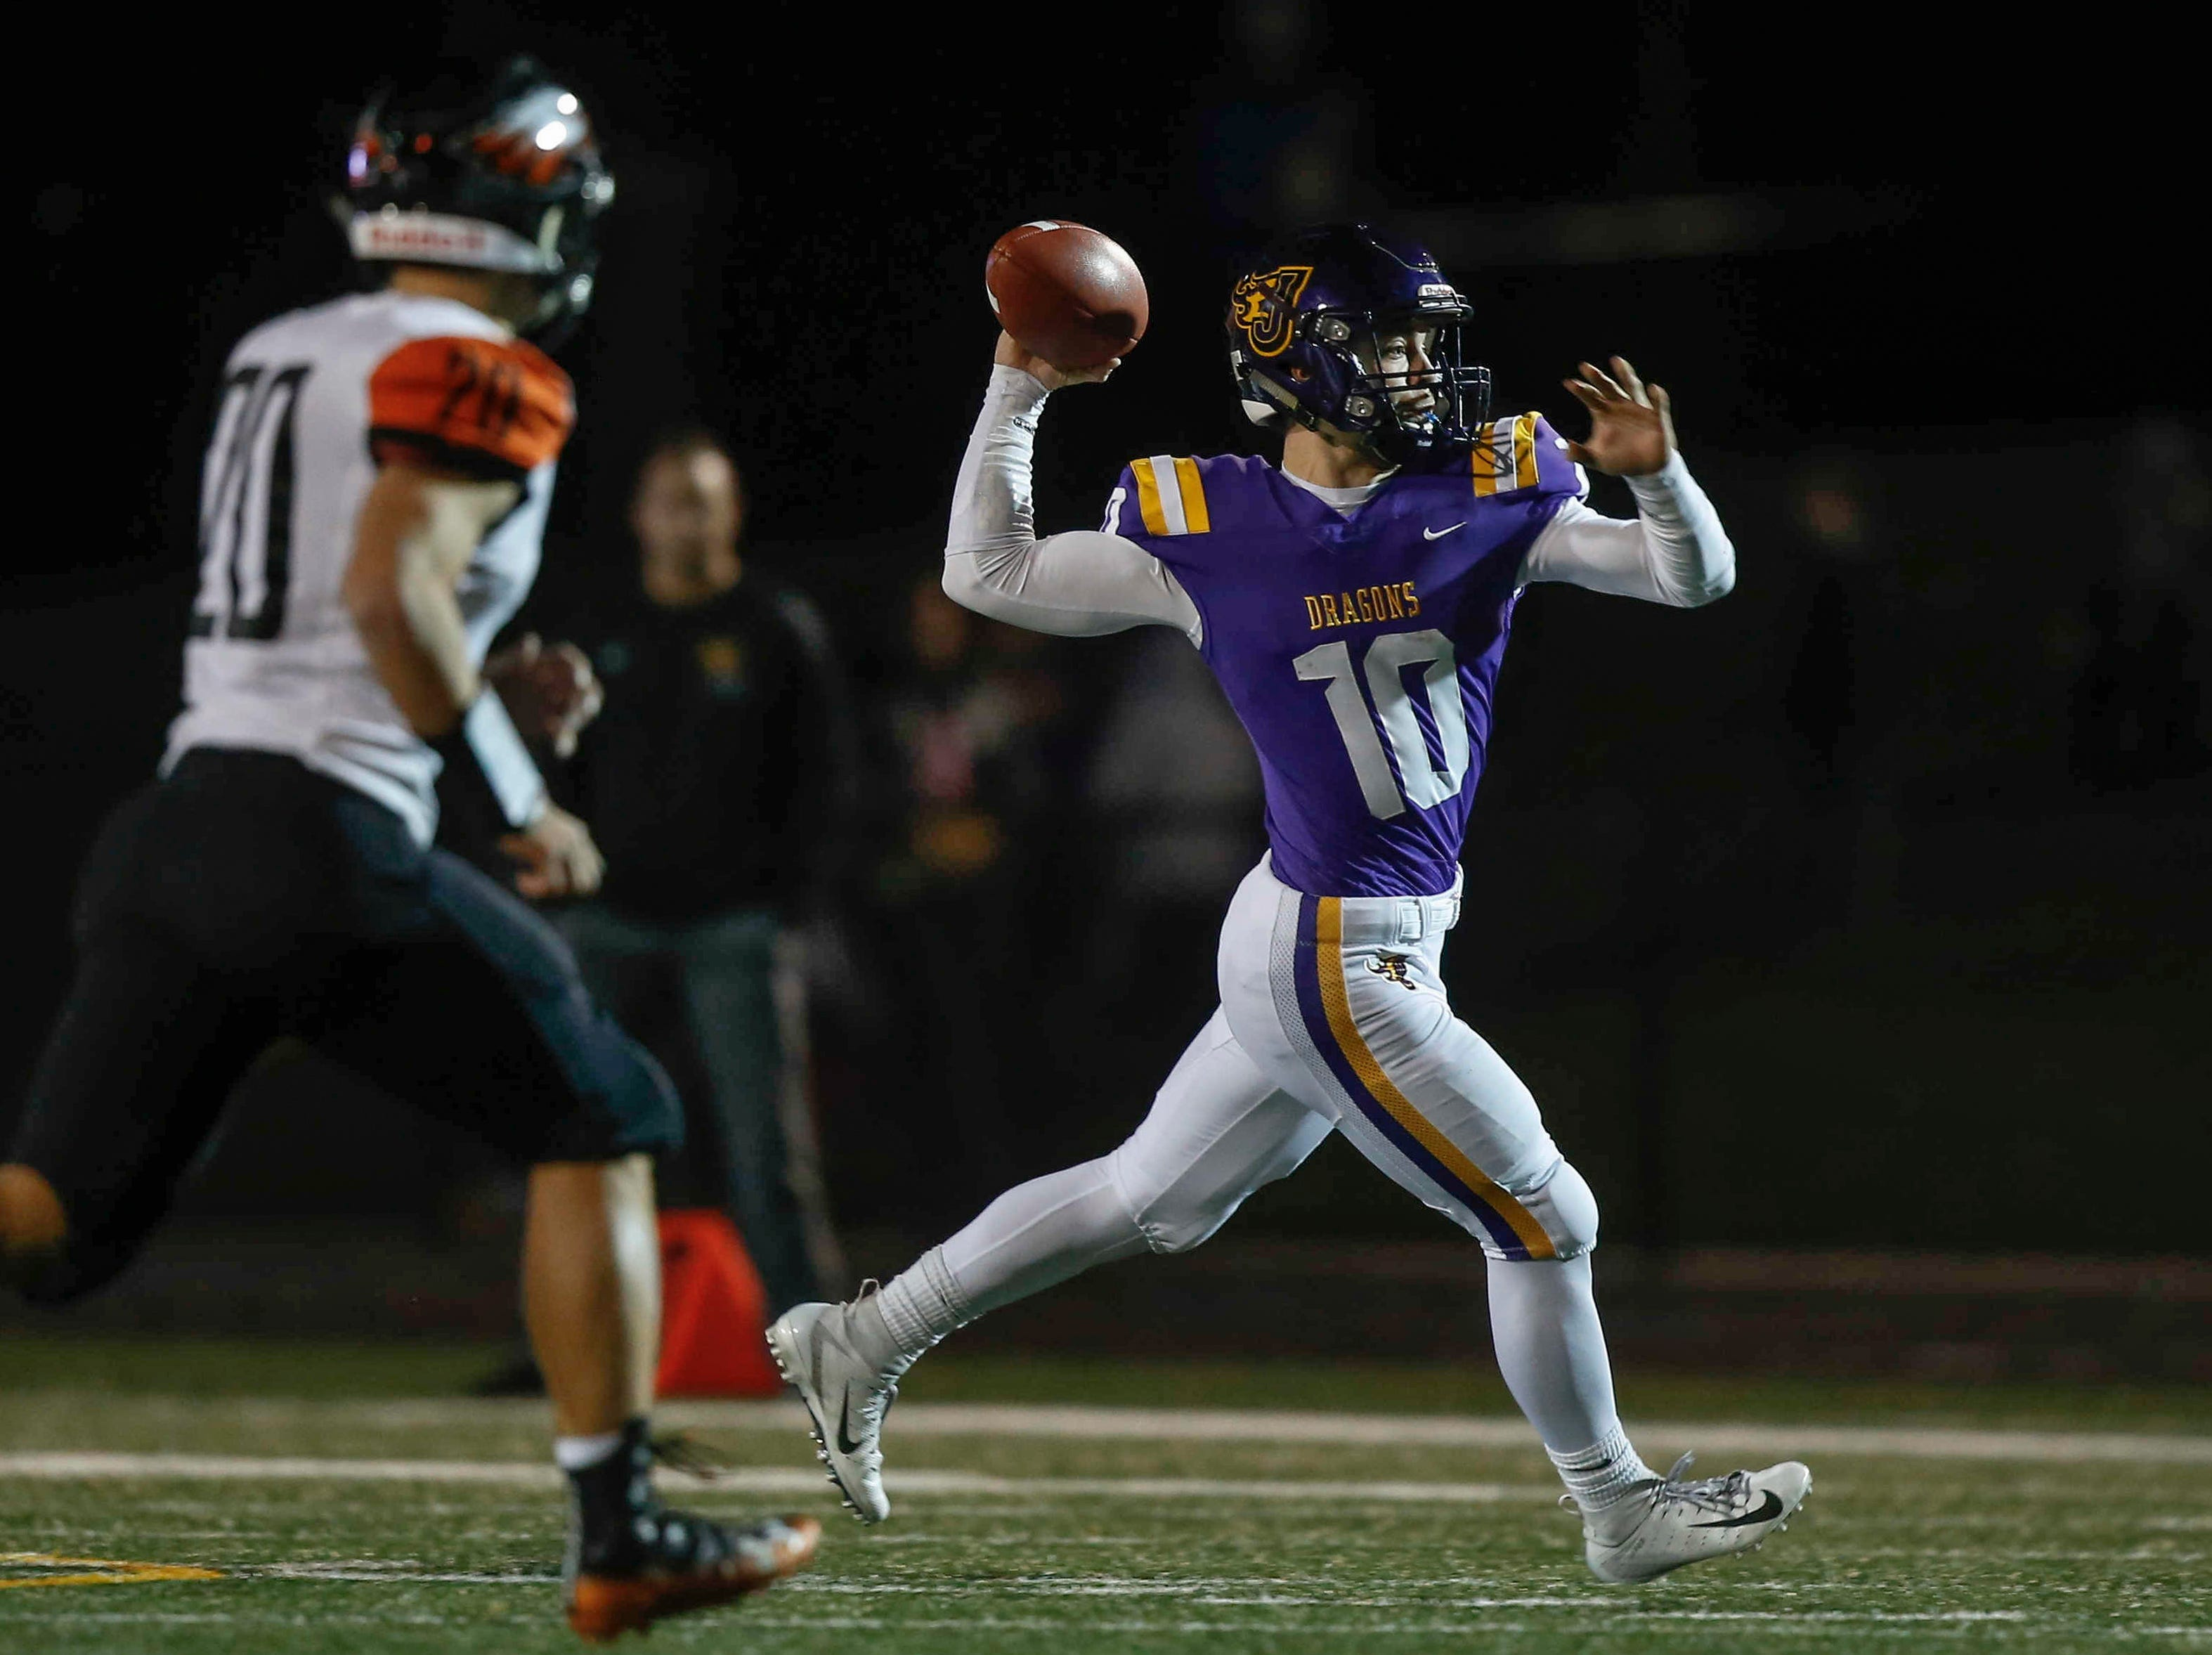 Johnston quarterback Andrew Nord fires a pass against Cedar Rapids Prairie during the first round of Iowa high school football playoffs on Friday, Oct. 26, 2018.